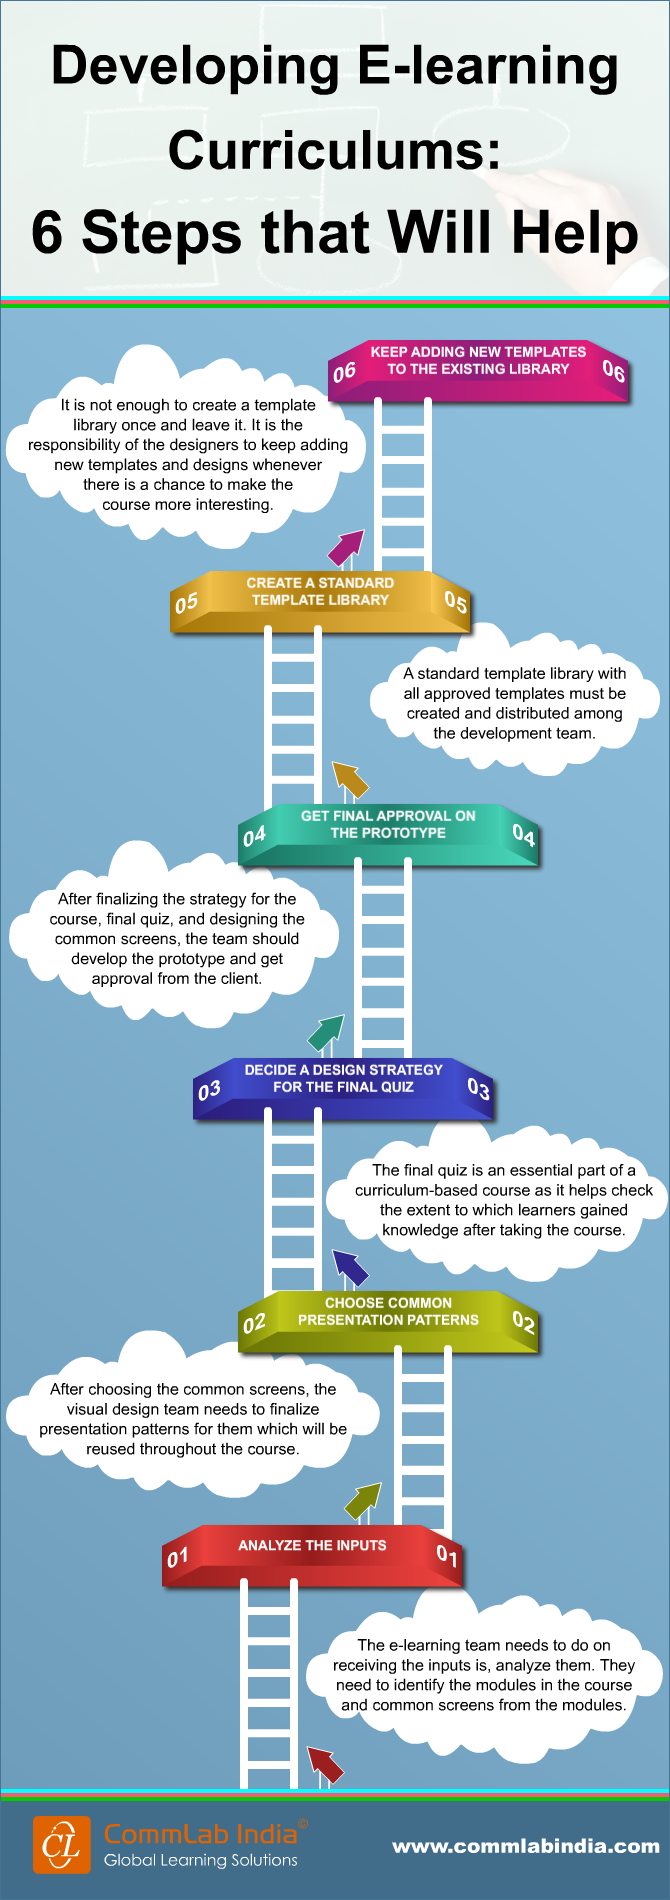 Developing E-learning Curriculums: 6 Steps that Will Help [Infographic]